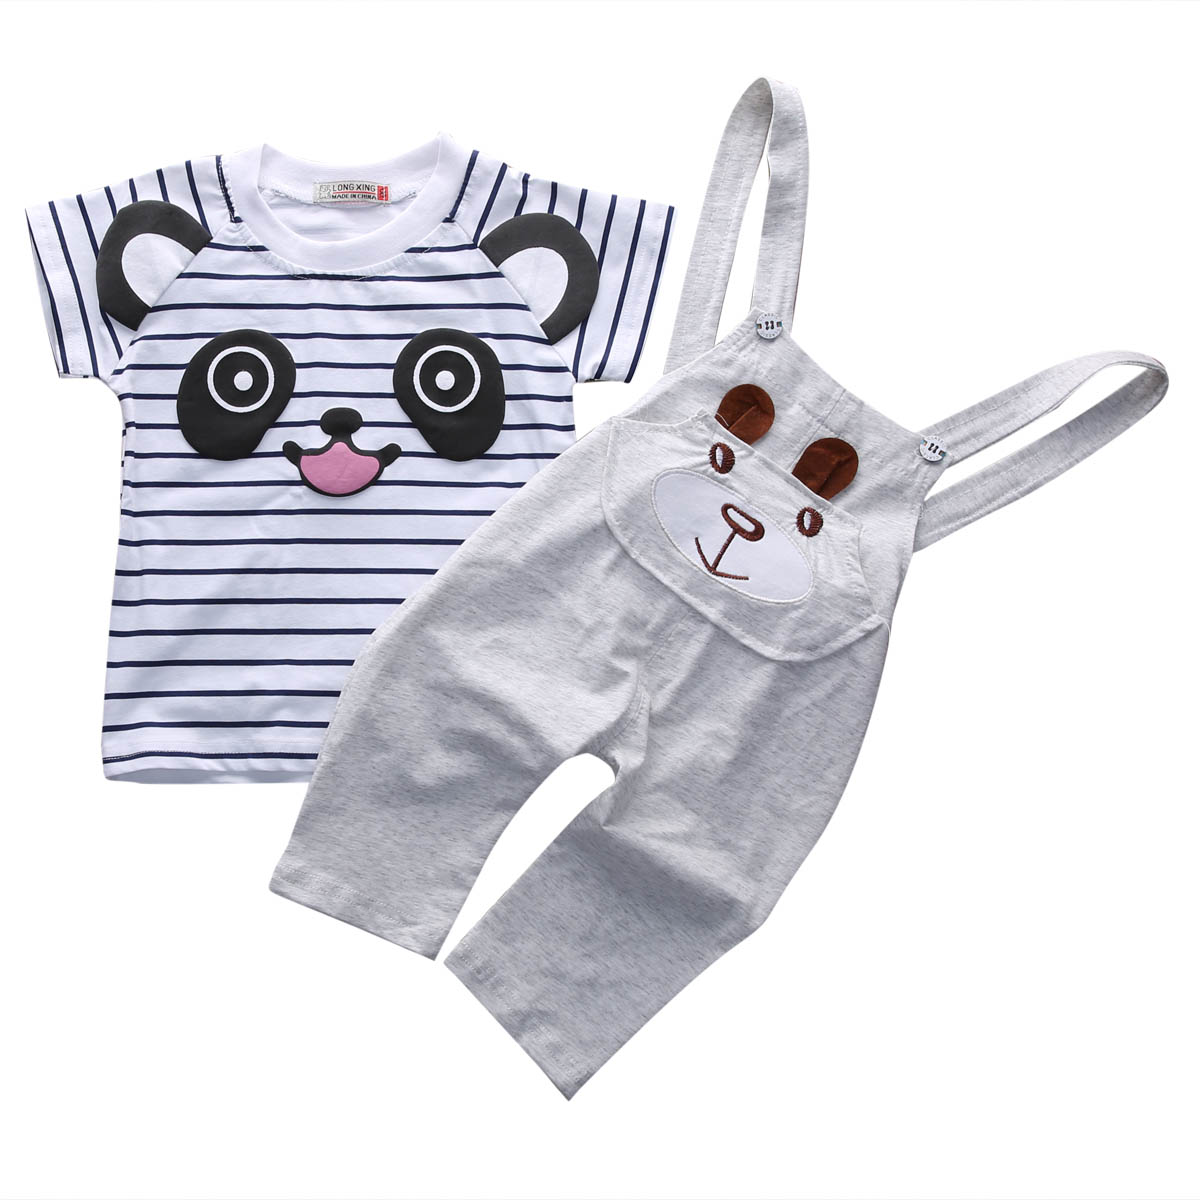 Cute 2PCS Newborn Kids Baby Boy Girls T-shirt Tops+Pants Overalls Outfits Clothes Set Summer Striped Tees Clothing 2018 spring newborn baby boy clothes gentleman baby boy long sleeved plaid shirt vest pants boy outfits shirt pants set